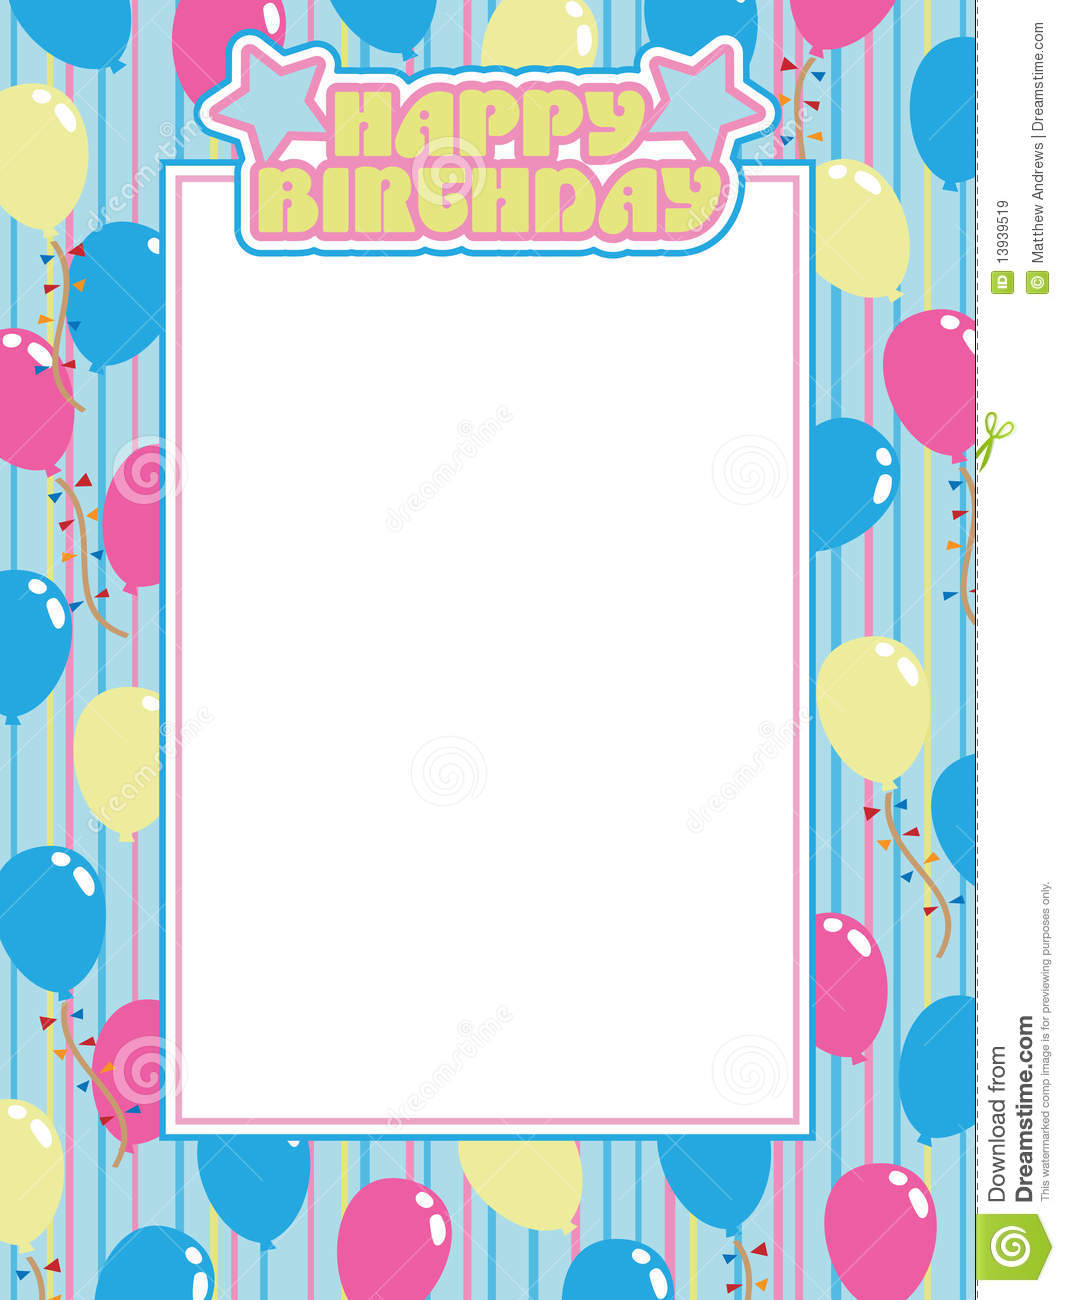 birthday frame royalty free stock images image 13939519